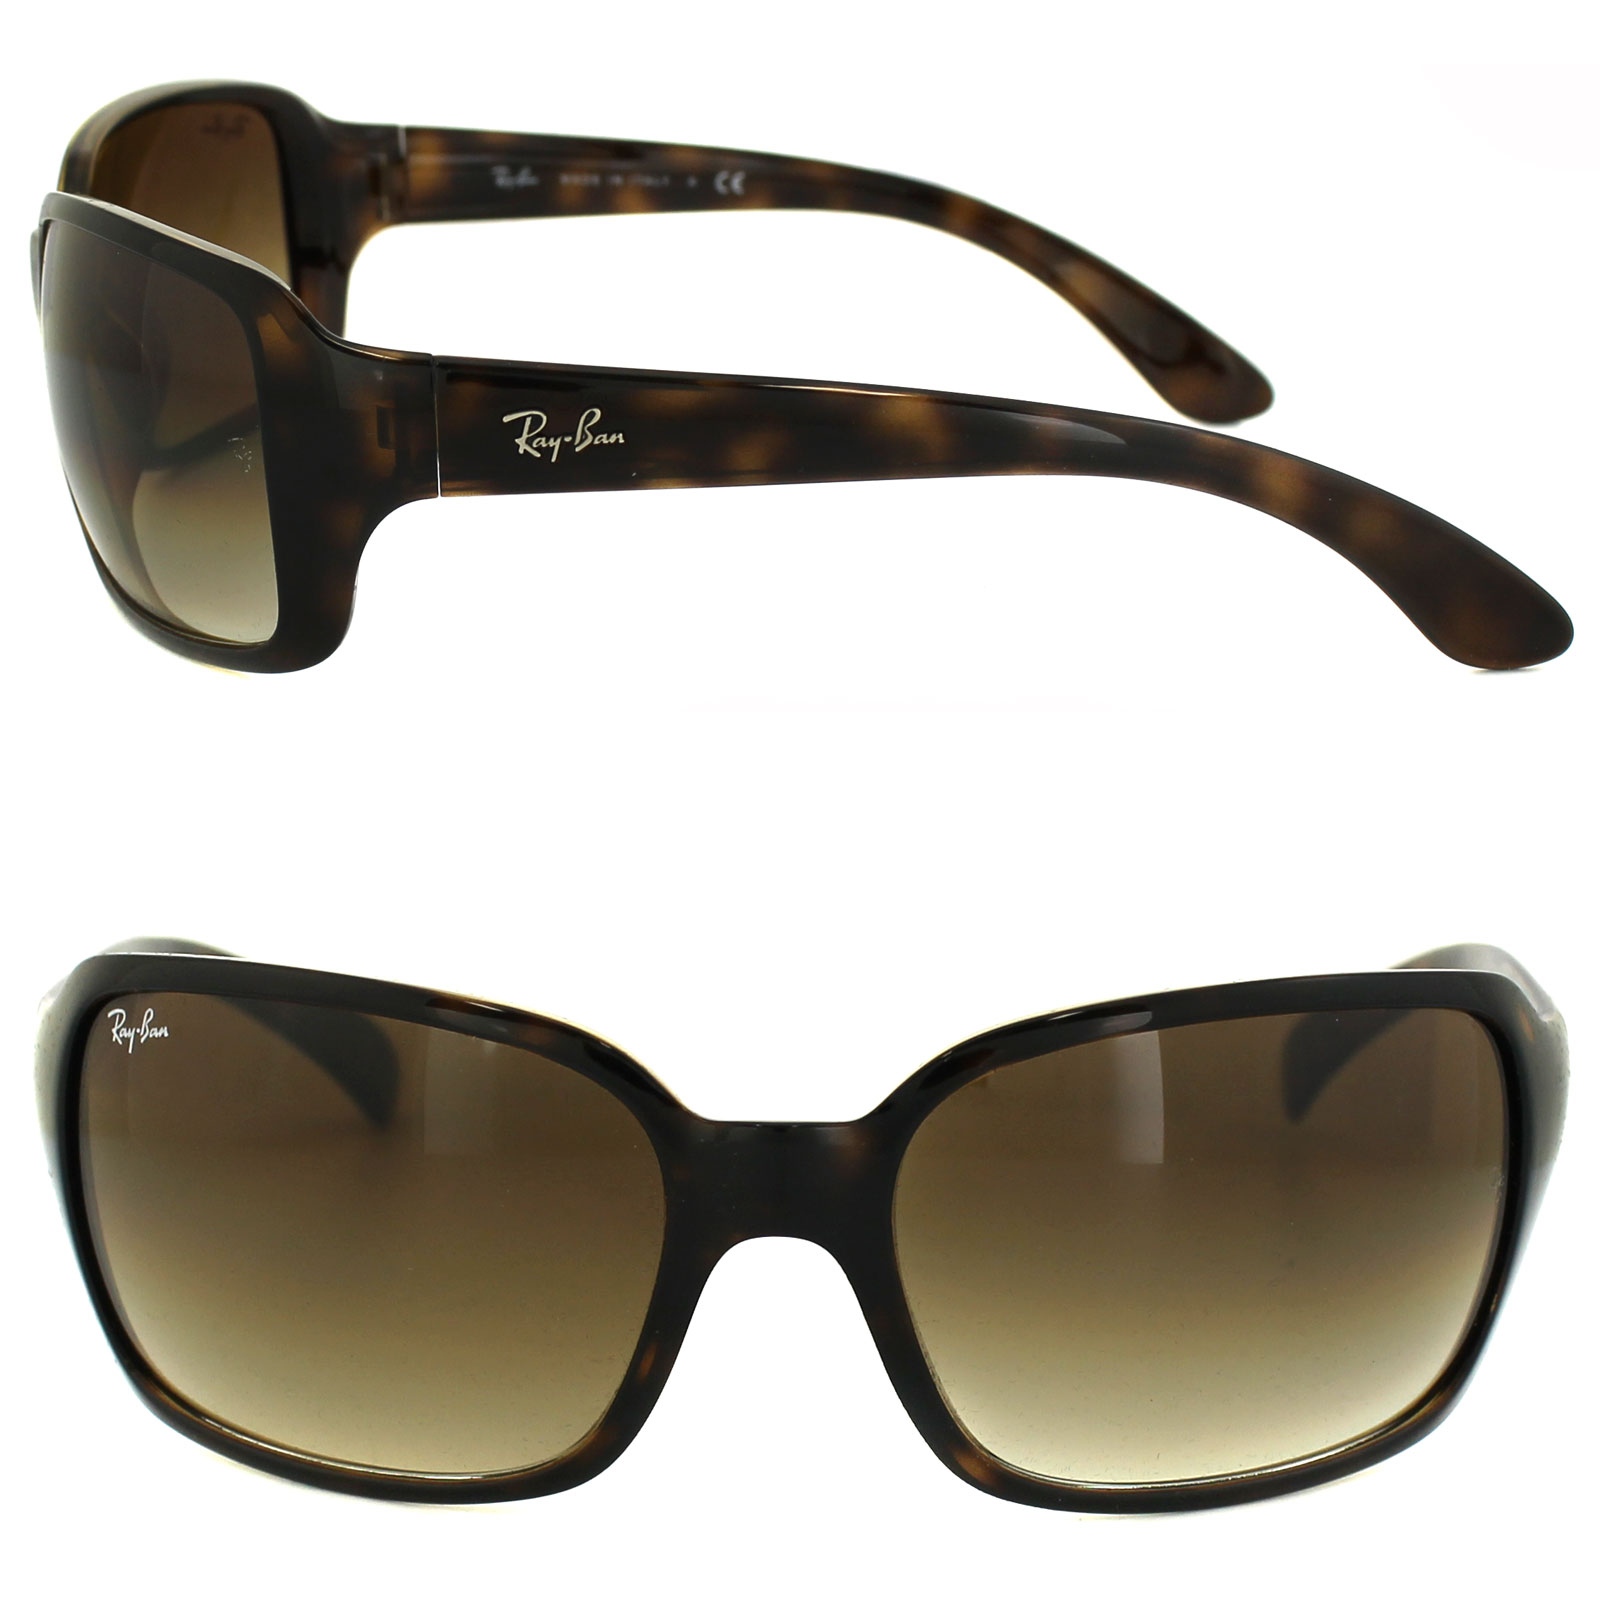 224a3948d1 Sentinel Ray-Ban Sunglasses 4068 710 51 Havana Brown Gradient